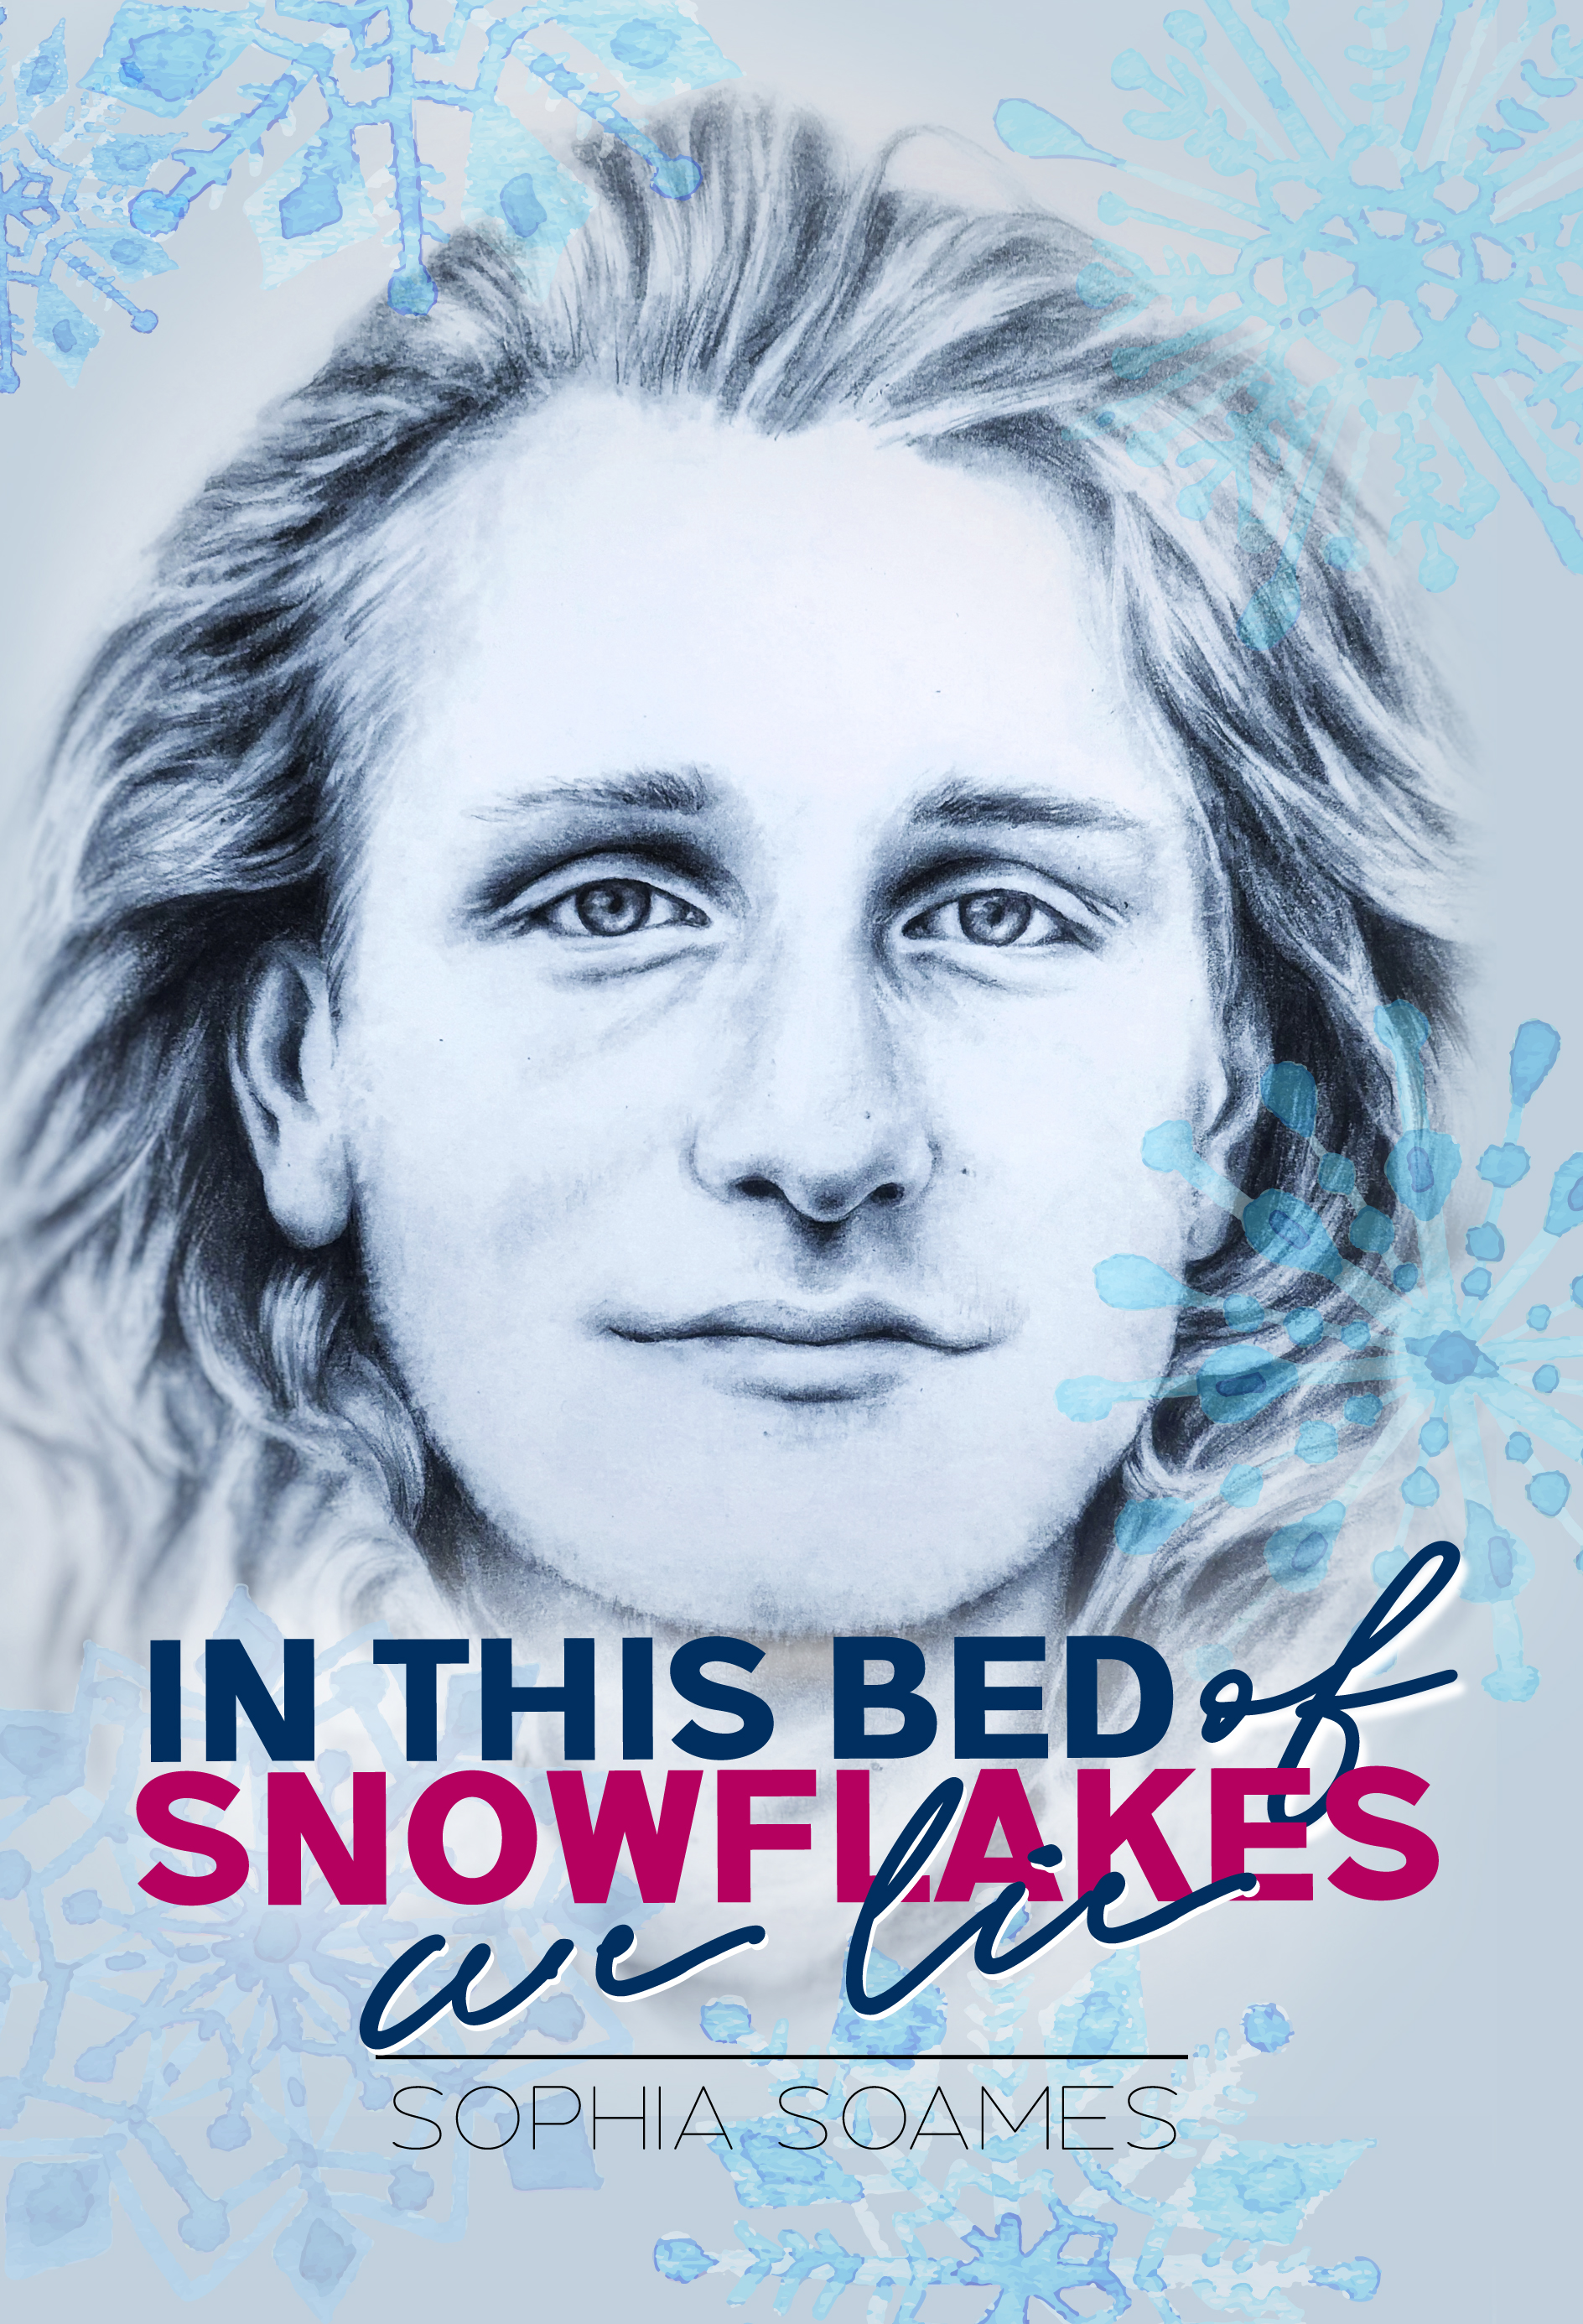 Review: In This Bed of Snowflakes We Lie by Sophia Soames